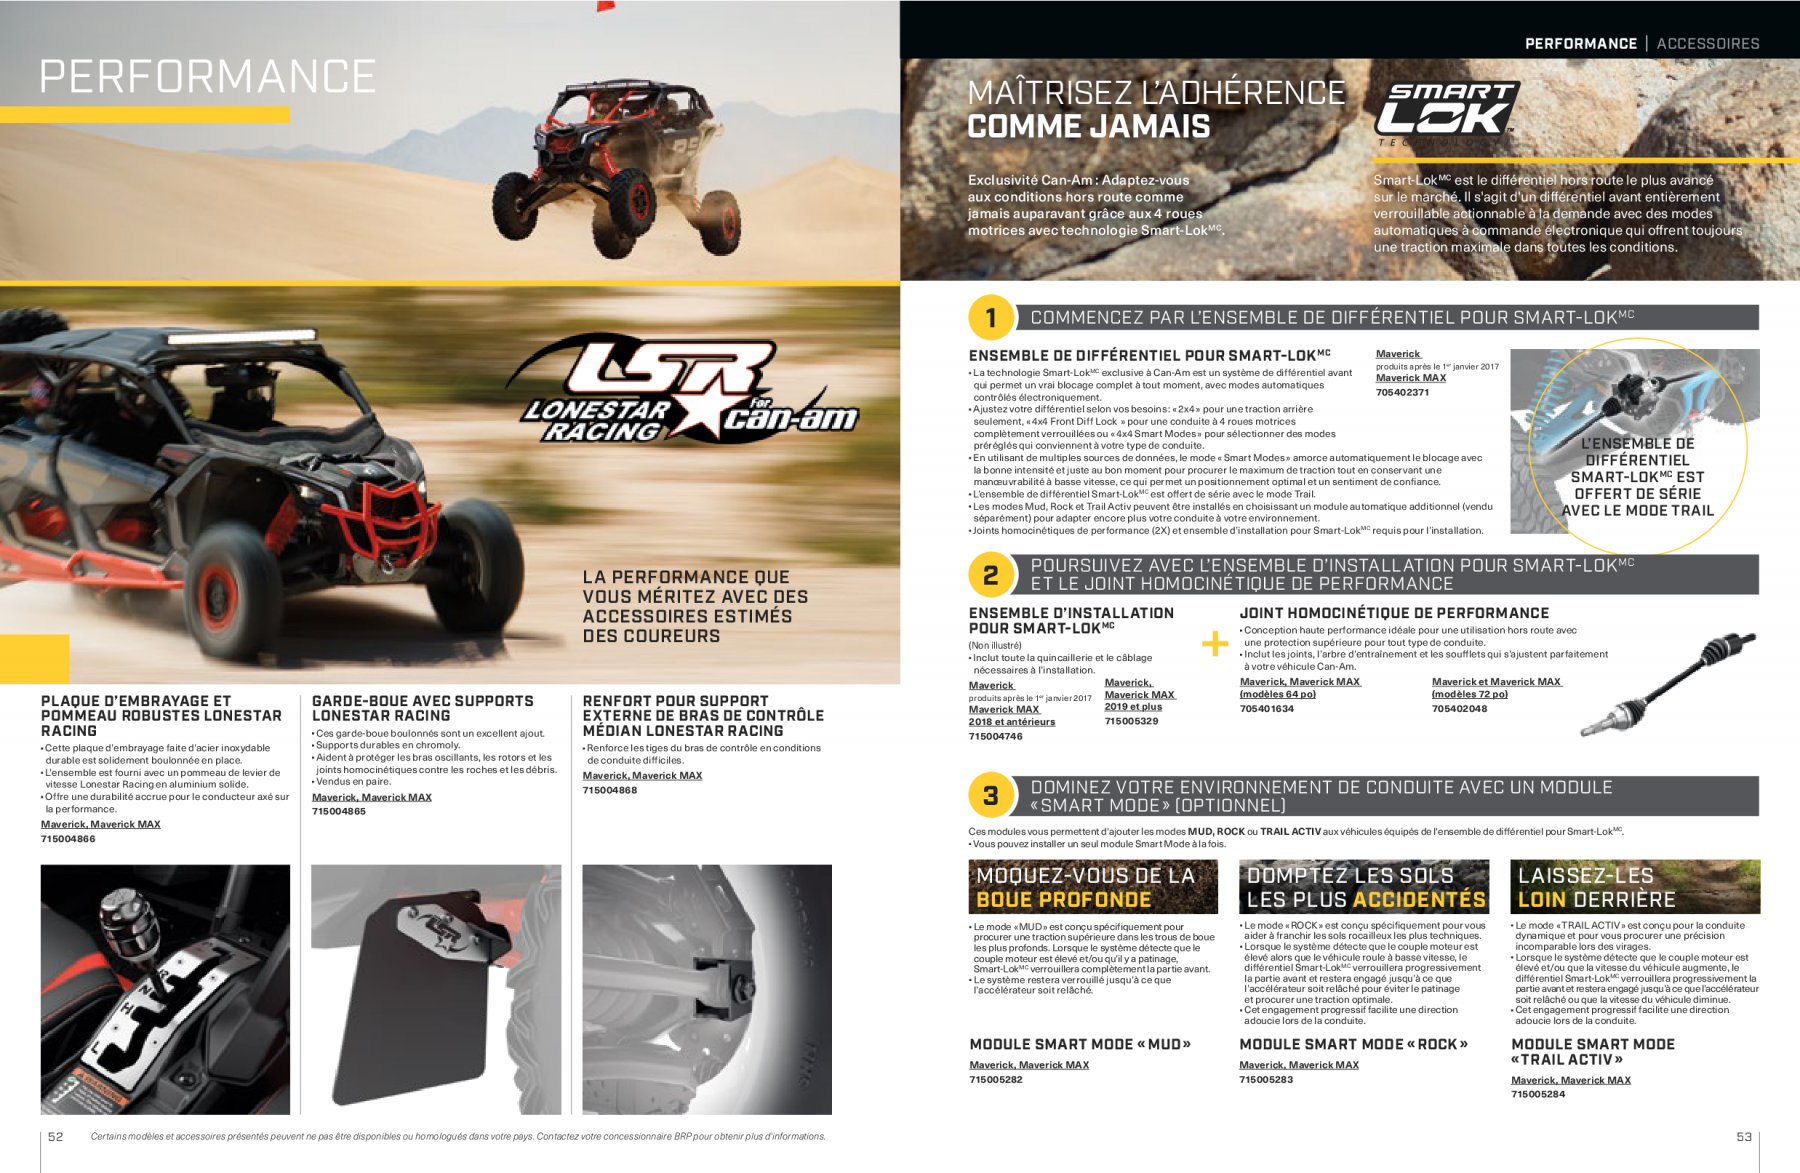 catalogue-accessoires-can-am-off-road-2021-maverick-X27